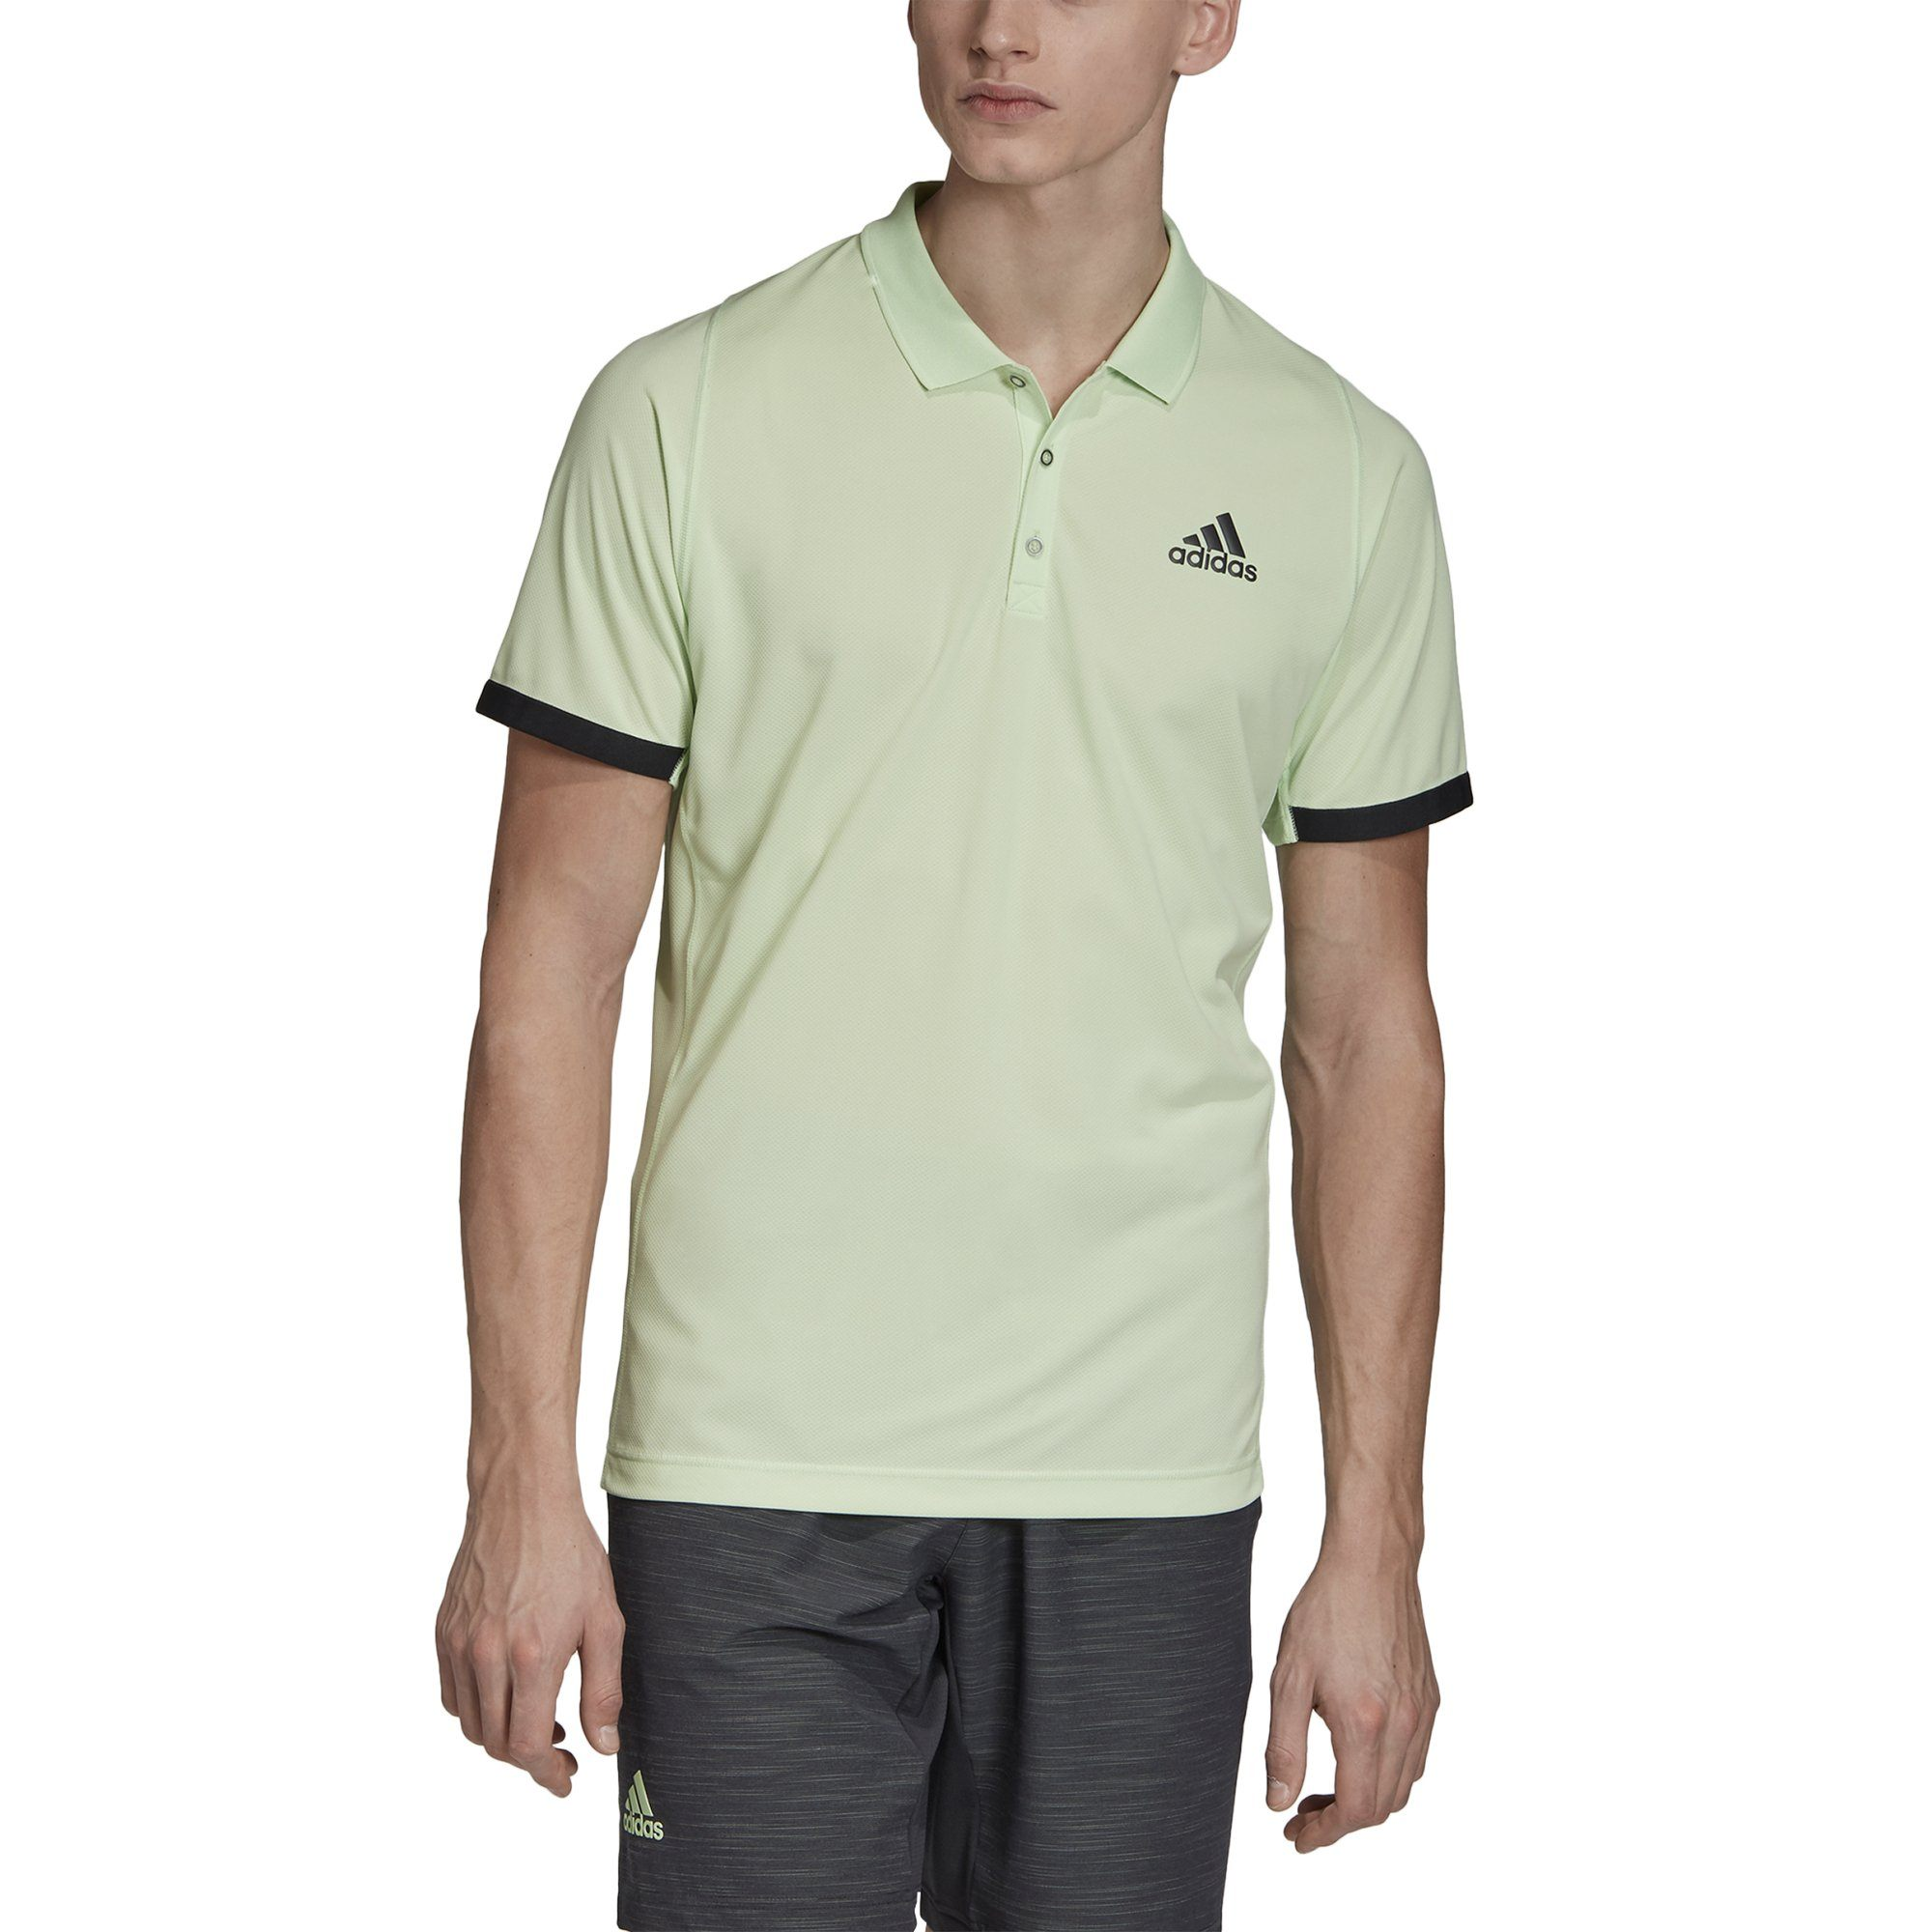 Adidas Mens New York Polo Shirt - glow green/carbon SP-APPARELTEES-MENS Adidas